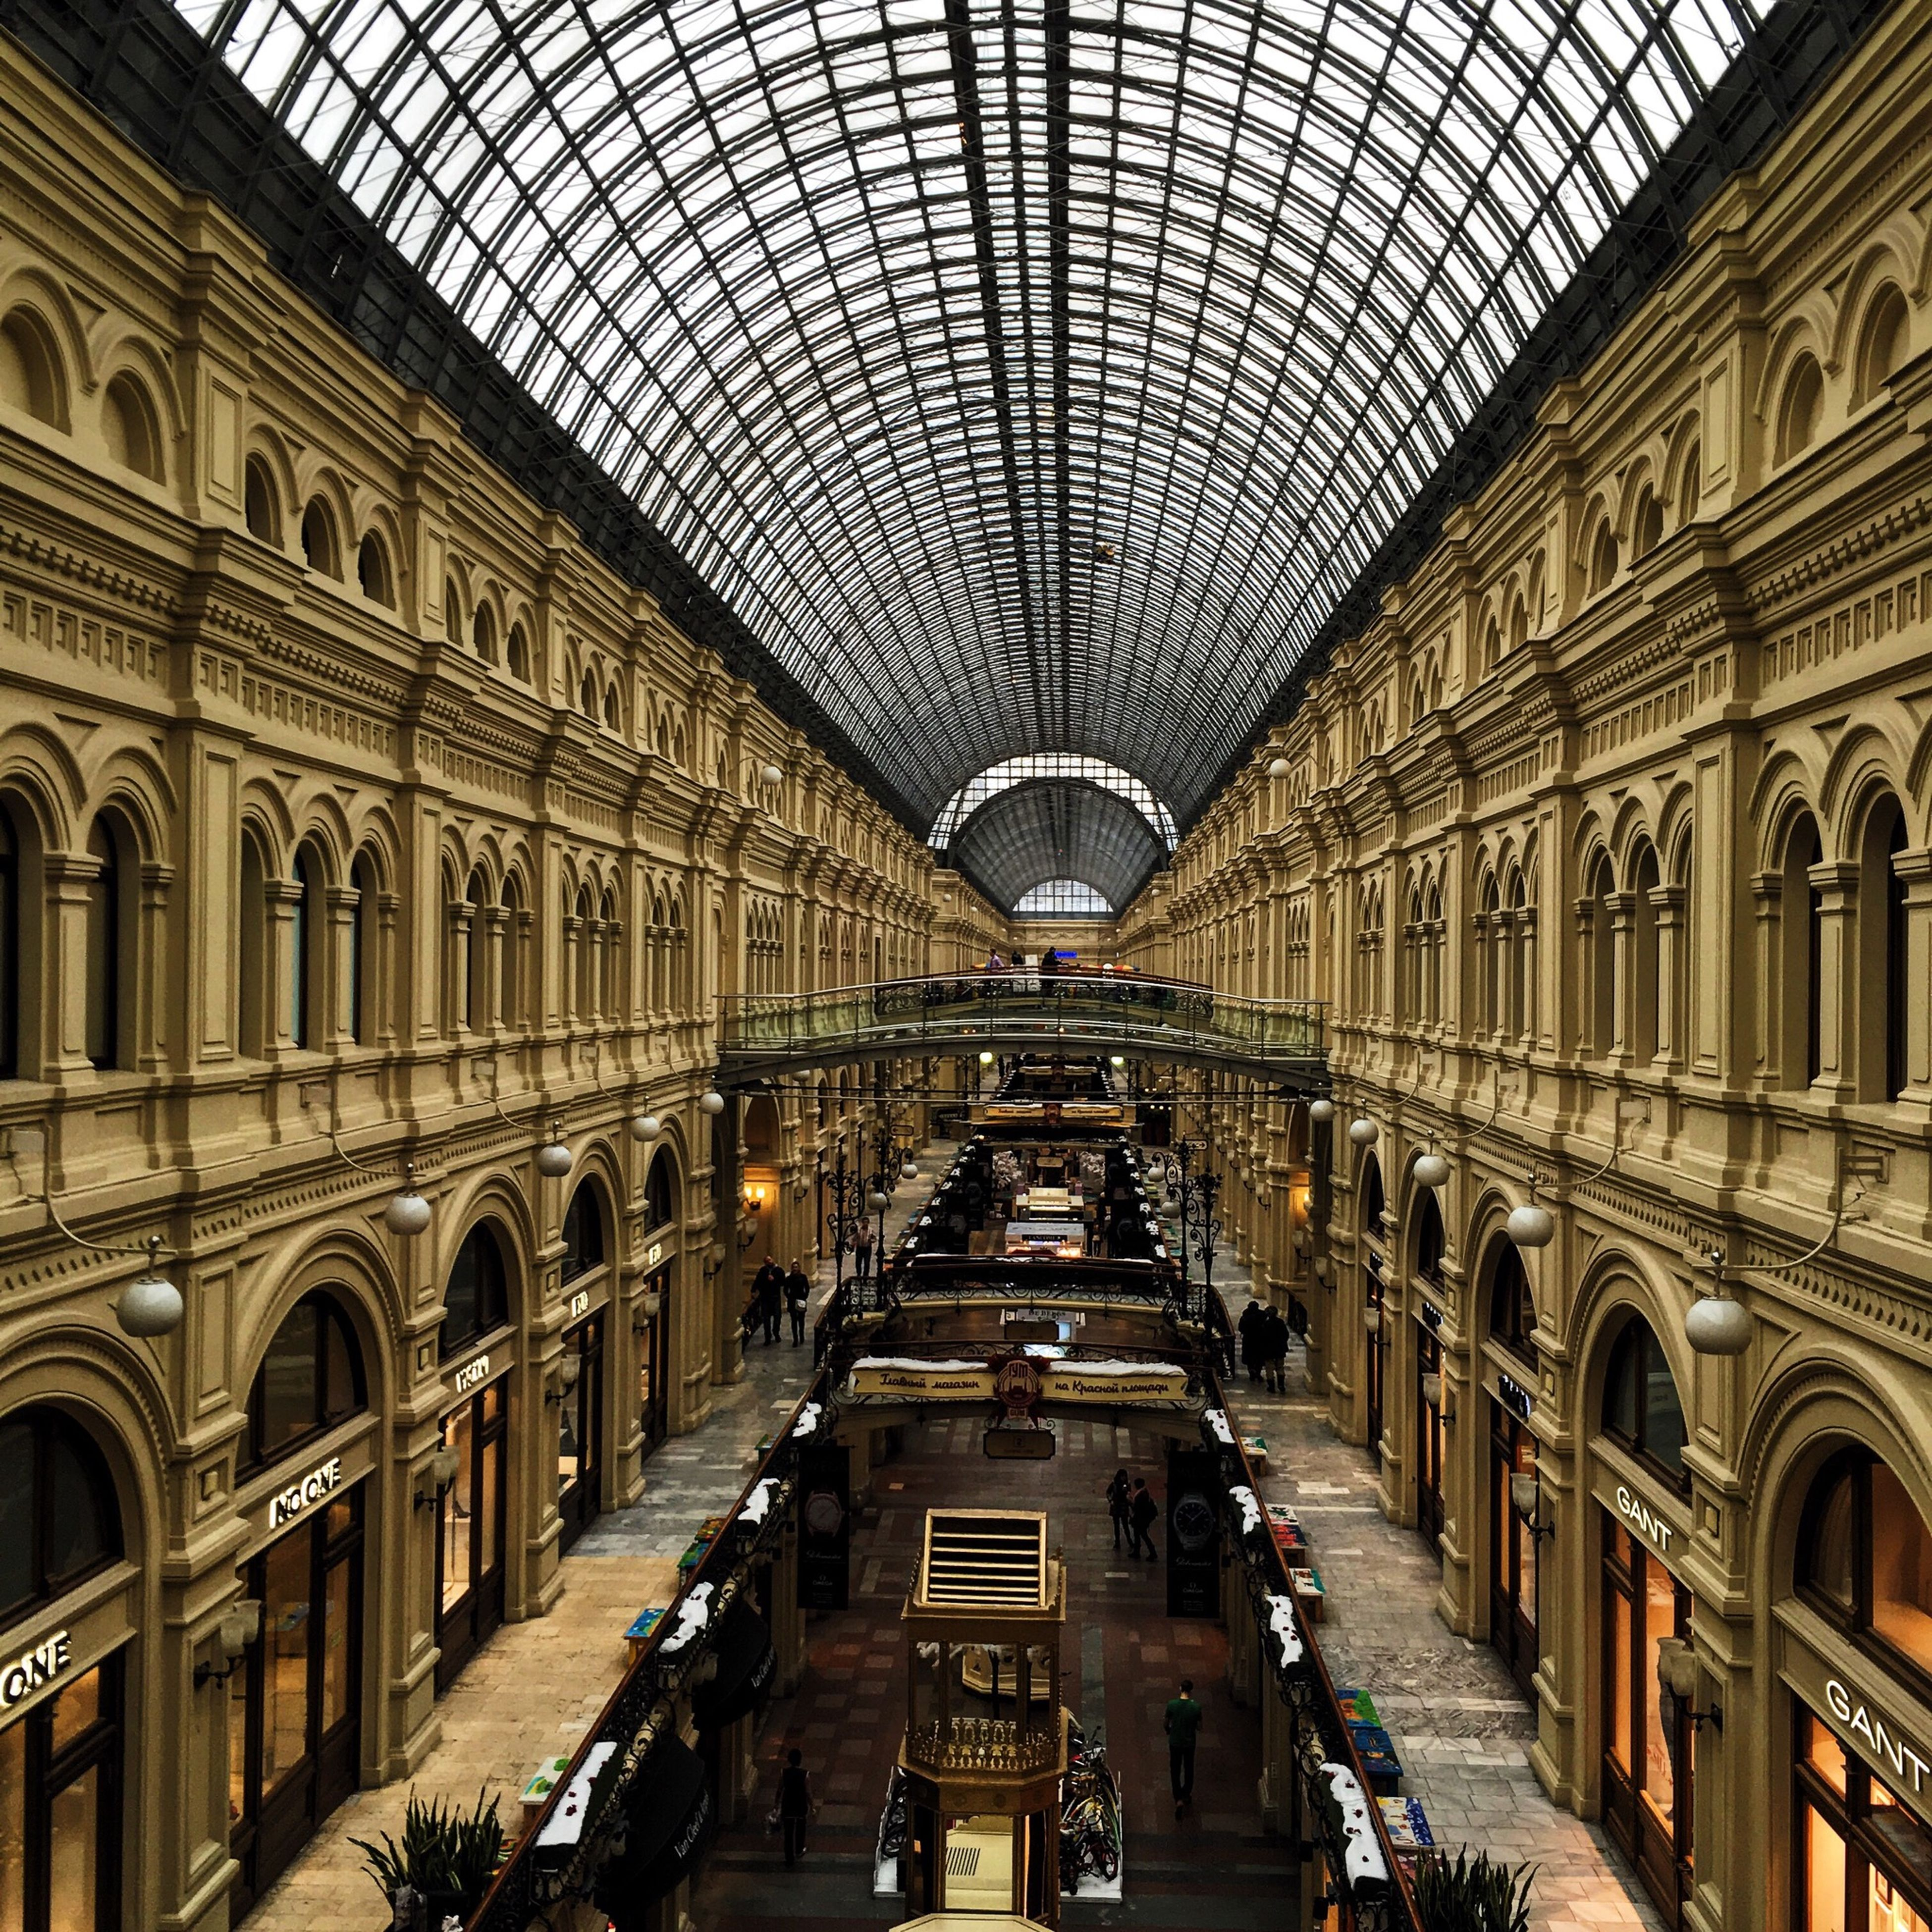 indoors, architecture, built structure, arch, ceiling, history, interior, transportation, window, travel, incidental people, diminishing perspective, the way forward, in a row, travel destinations, building, famous place, architectural column, architectural feature, tourism